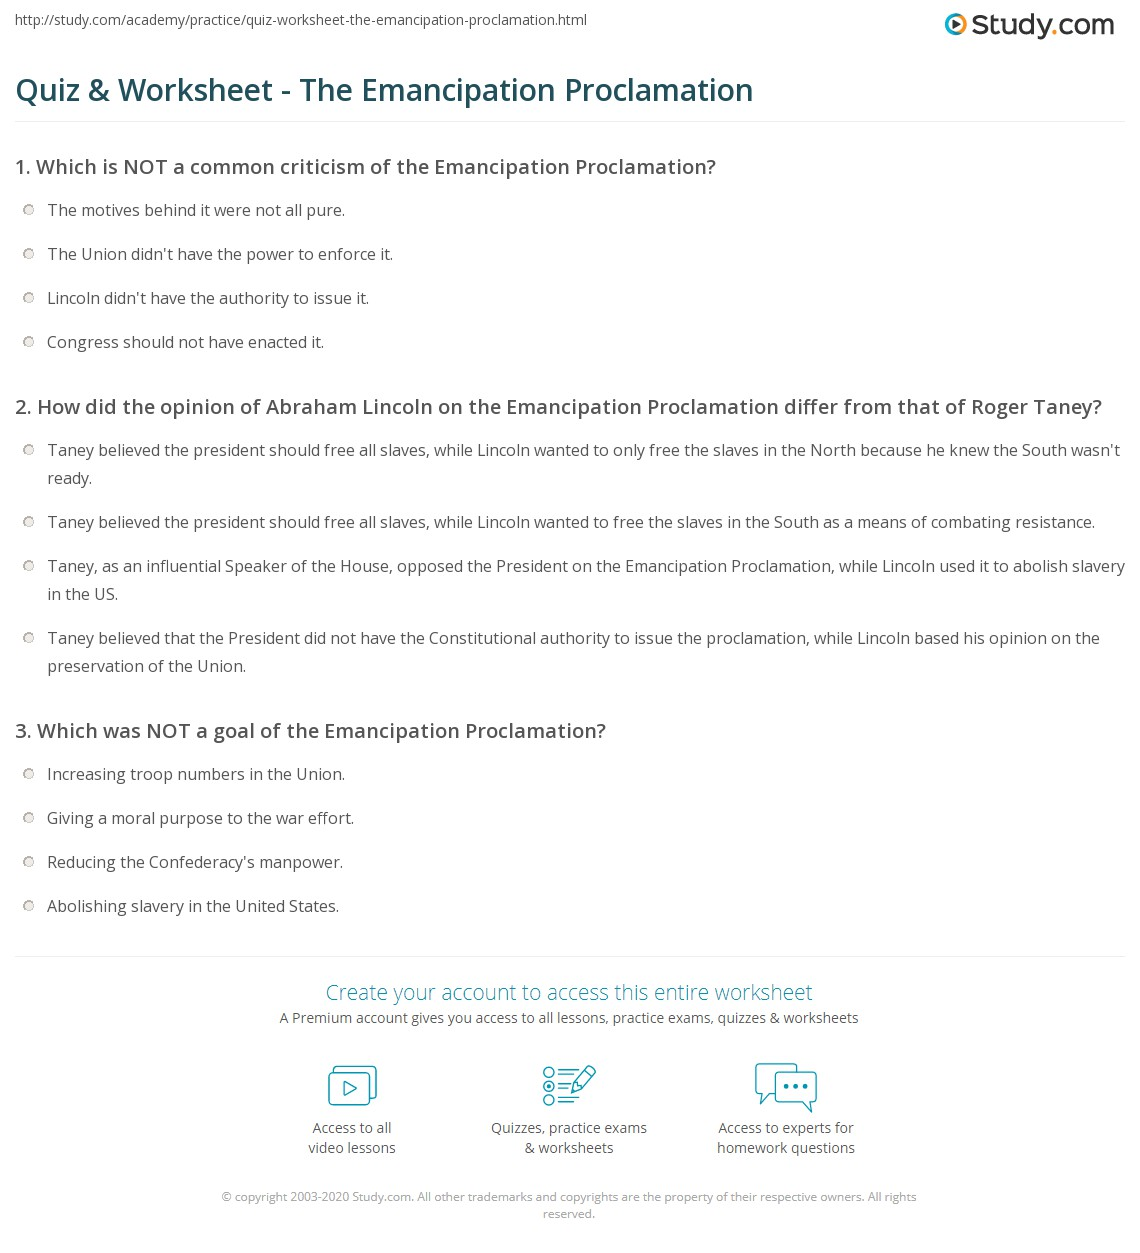 worksheet Emancipation Proclamation Worksheet quiz worksheet the emancipation proclamation study com print creation context and legacy worksheet